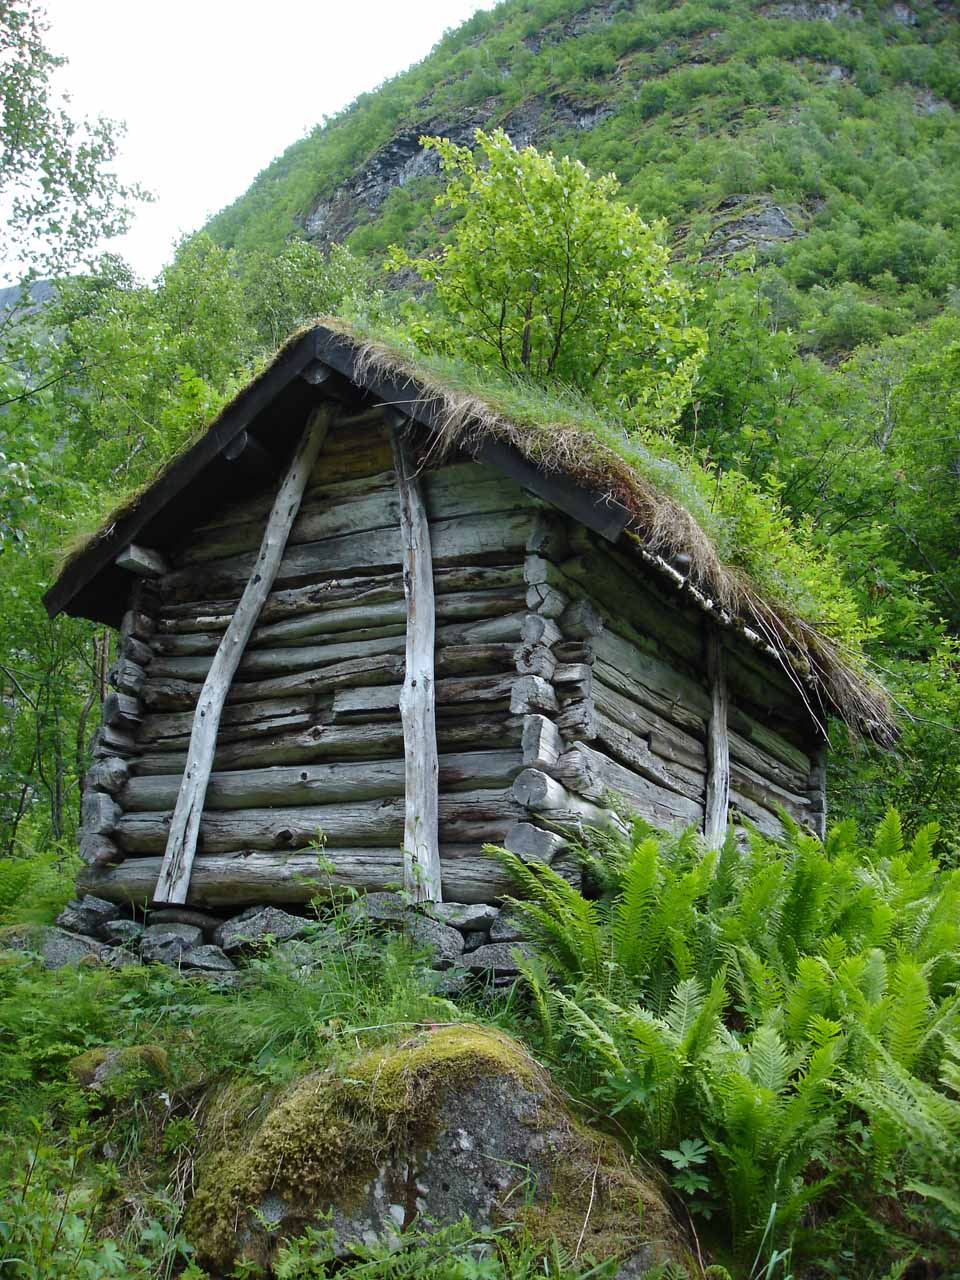 Julie noticed this other turf-roofed shack after leaving the Utladalen Naturhus